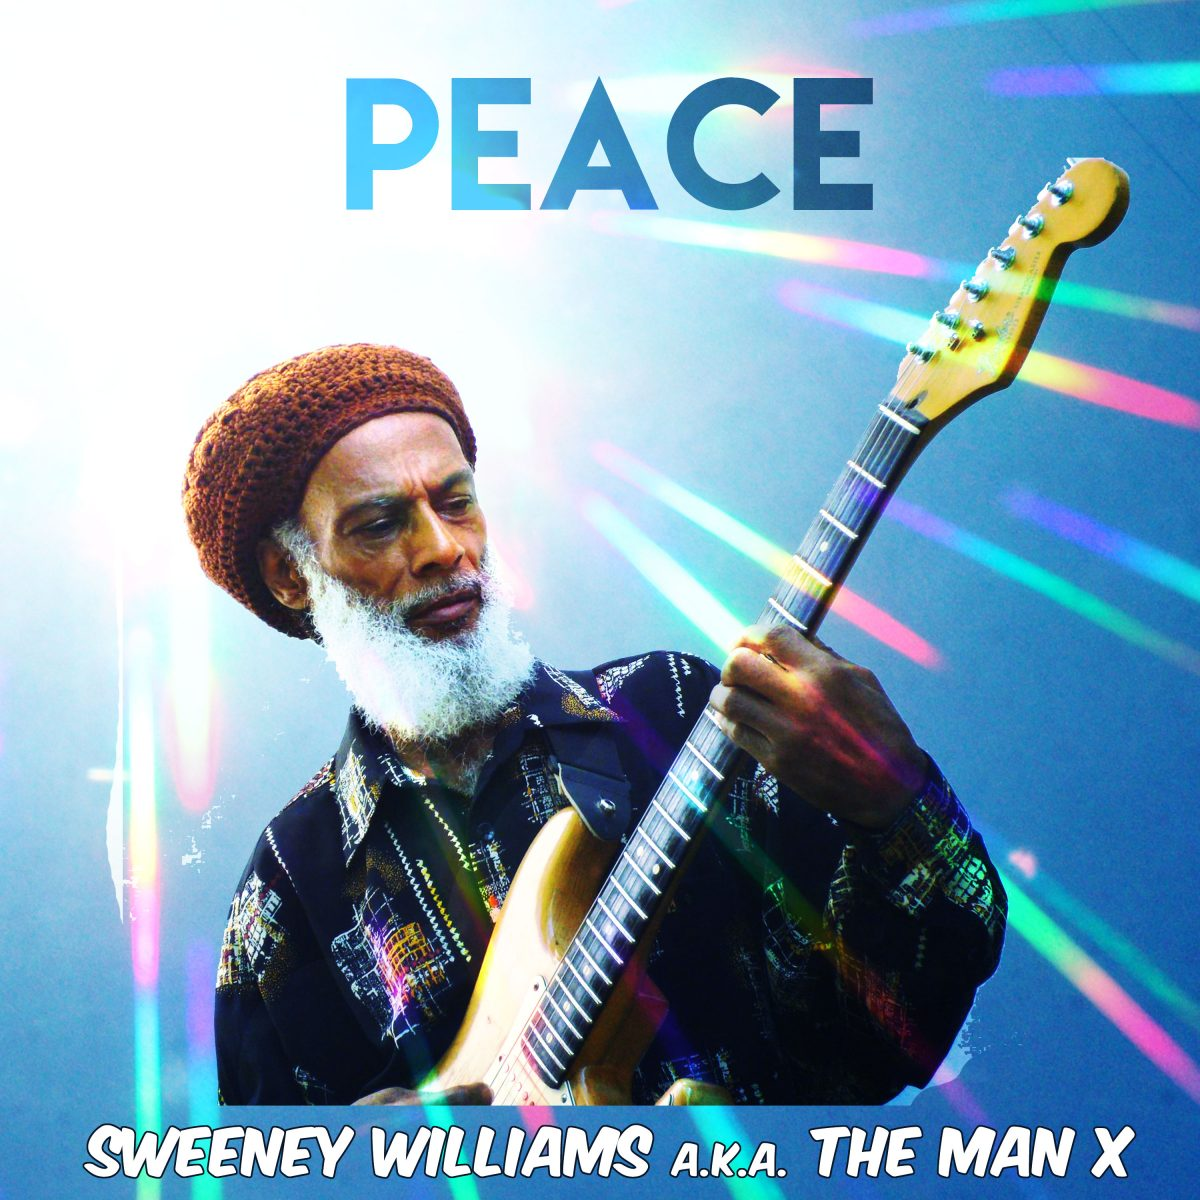 Sweeney Williams - Peace